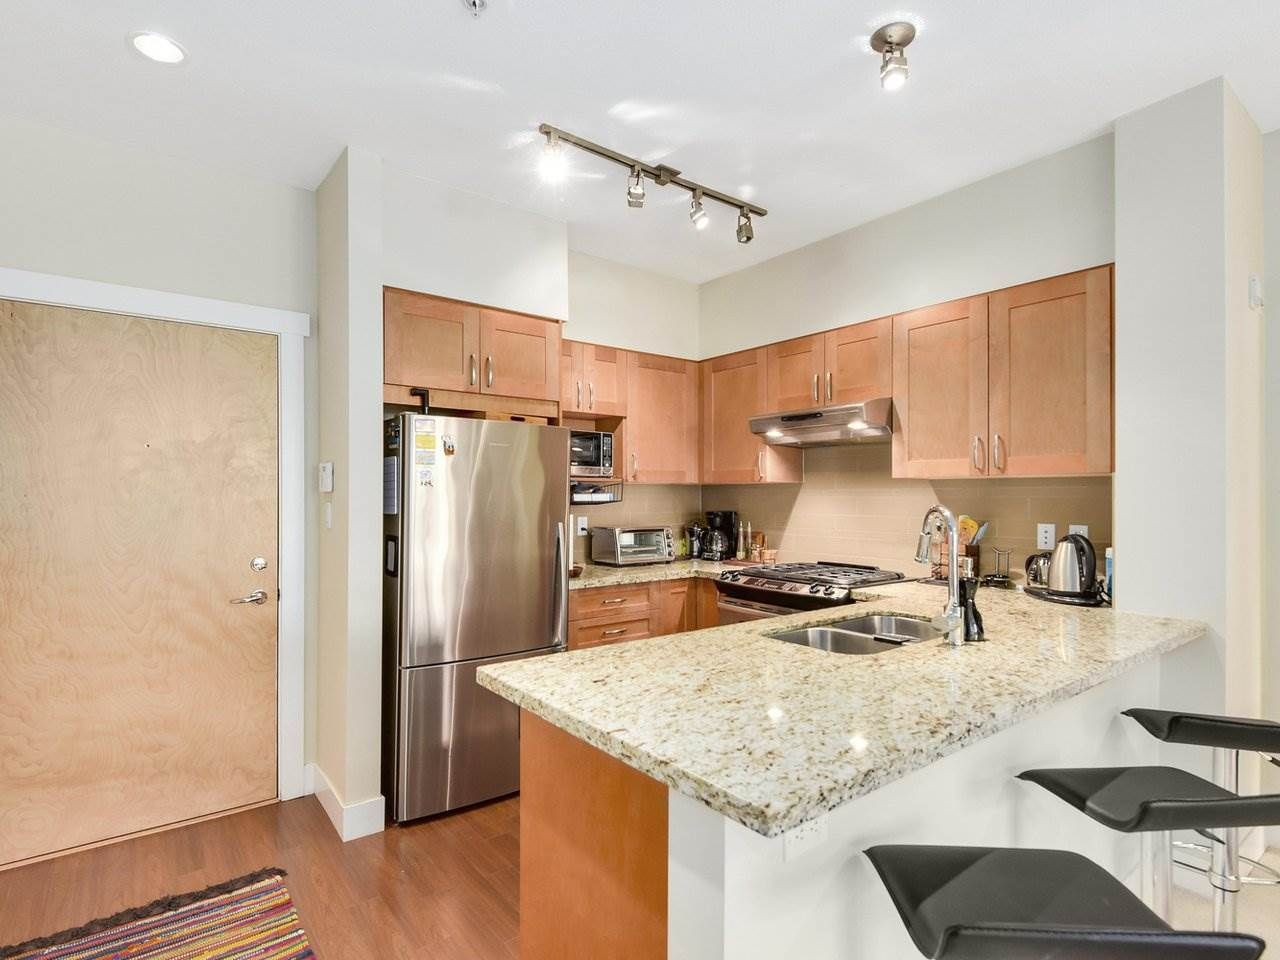 Photo 5: Photos: 106 2601 WHITELEY COURT in North Vancouver: Lynn Valley Condo for sale : MLS®# R2186381